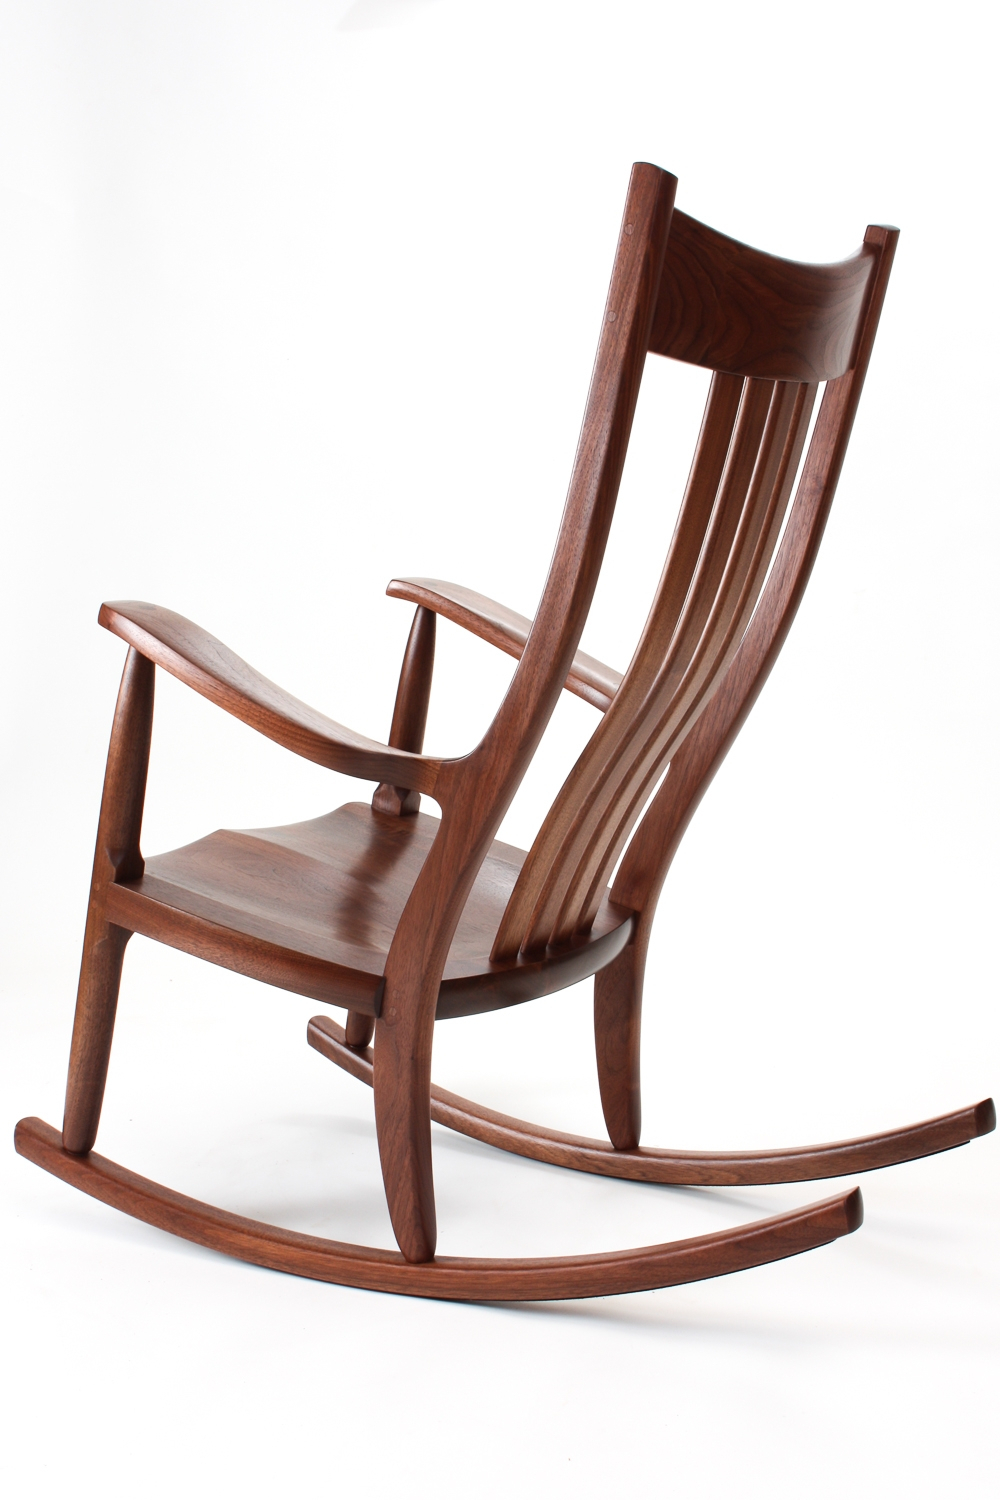 Walnut Rocking Chairs | Comfortable, Handmade, Heirloom Within Dark Walnut Rocking Chairs (View 2 of 20)